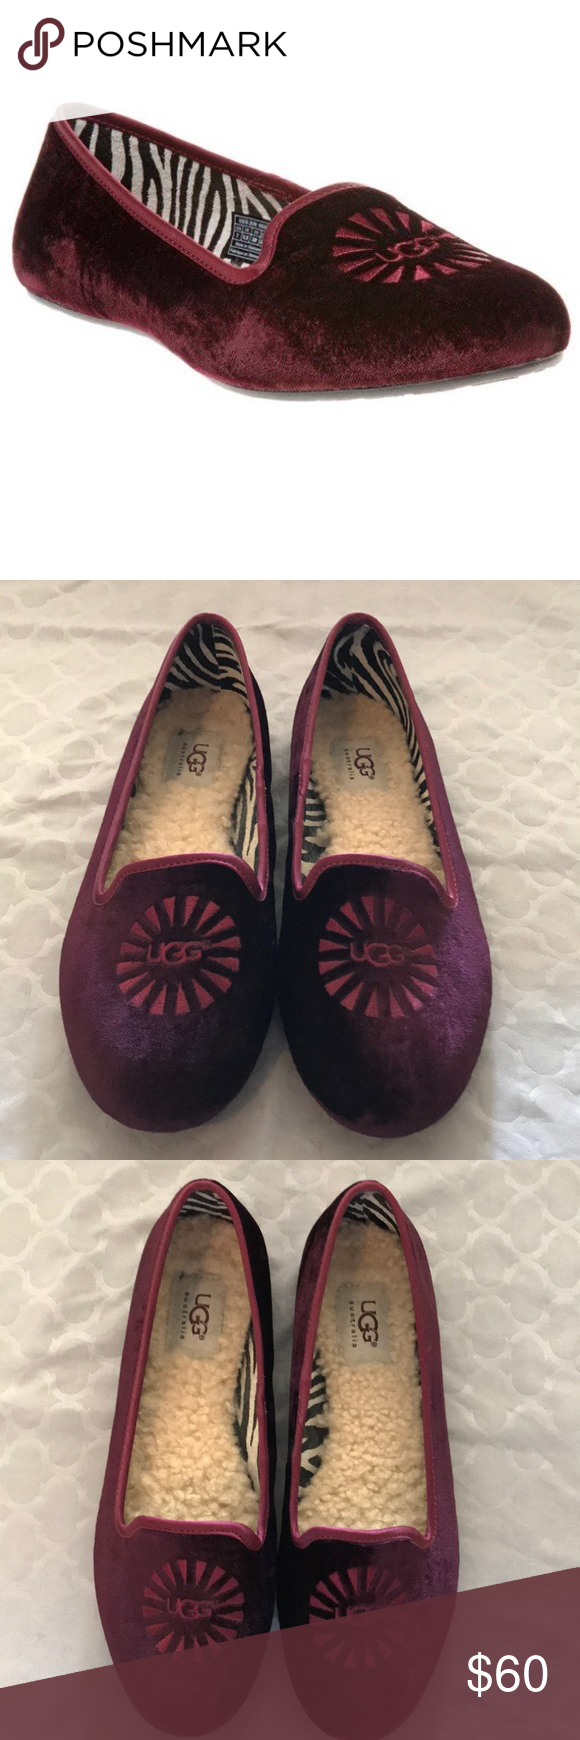 7b1e52a576e UGG Alloway Loafer Beautiful maroon color, no damage and has been ...